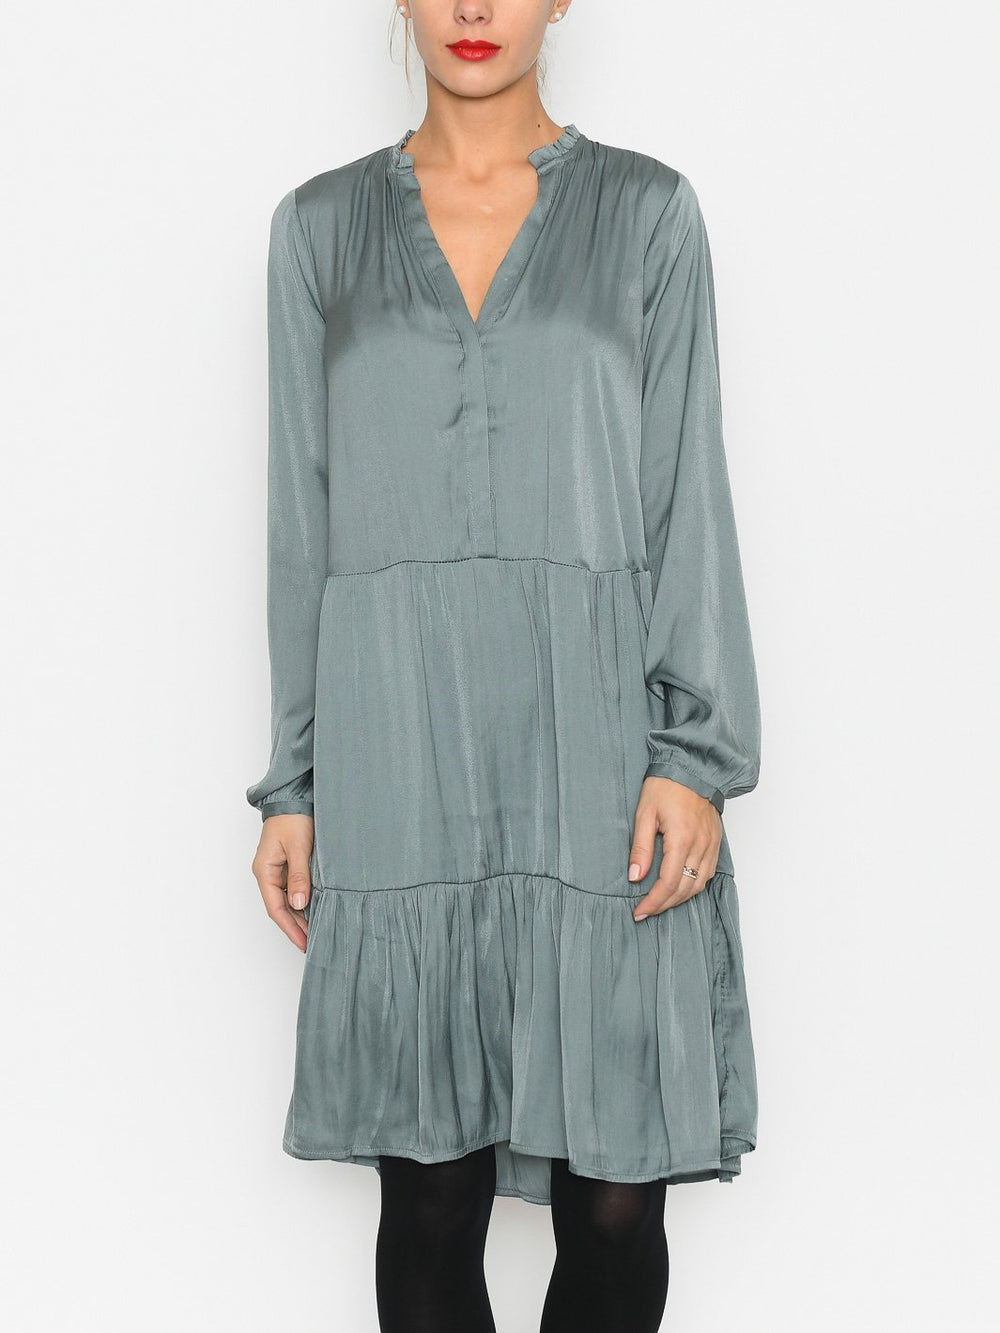 Soya Concept SC-Pamela 35 dress green - Online-Mode